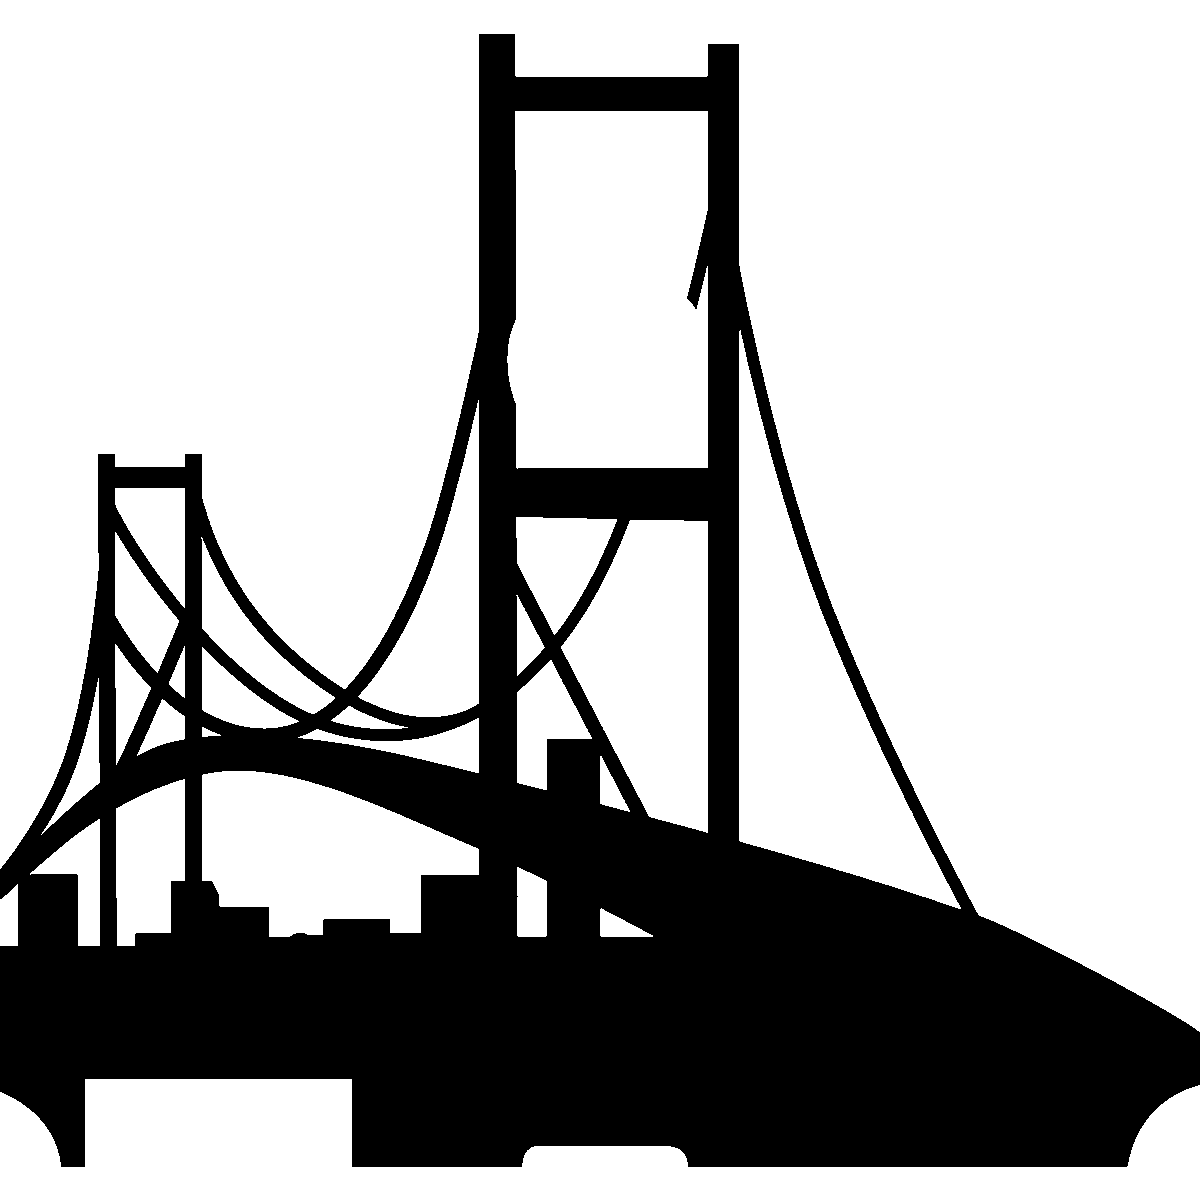 Golden Gate Bridge Vector Art